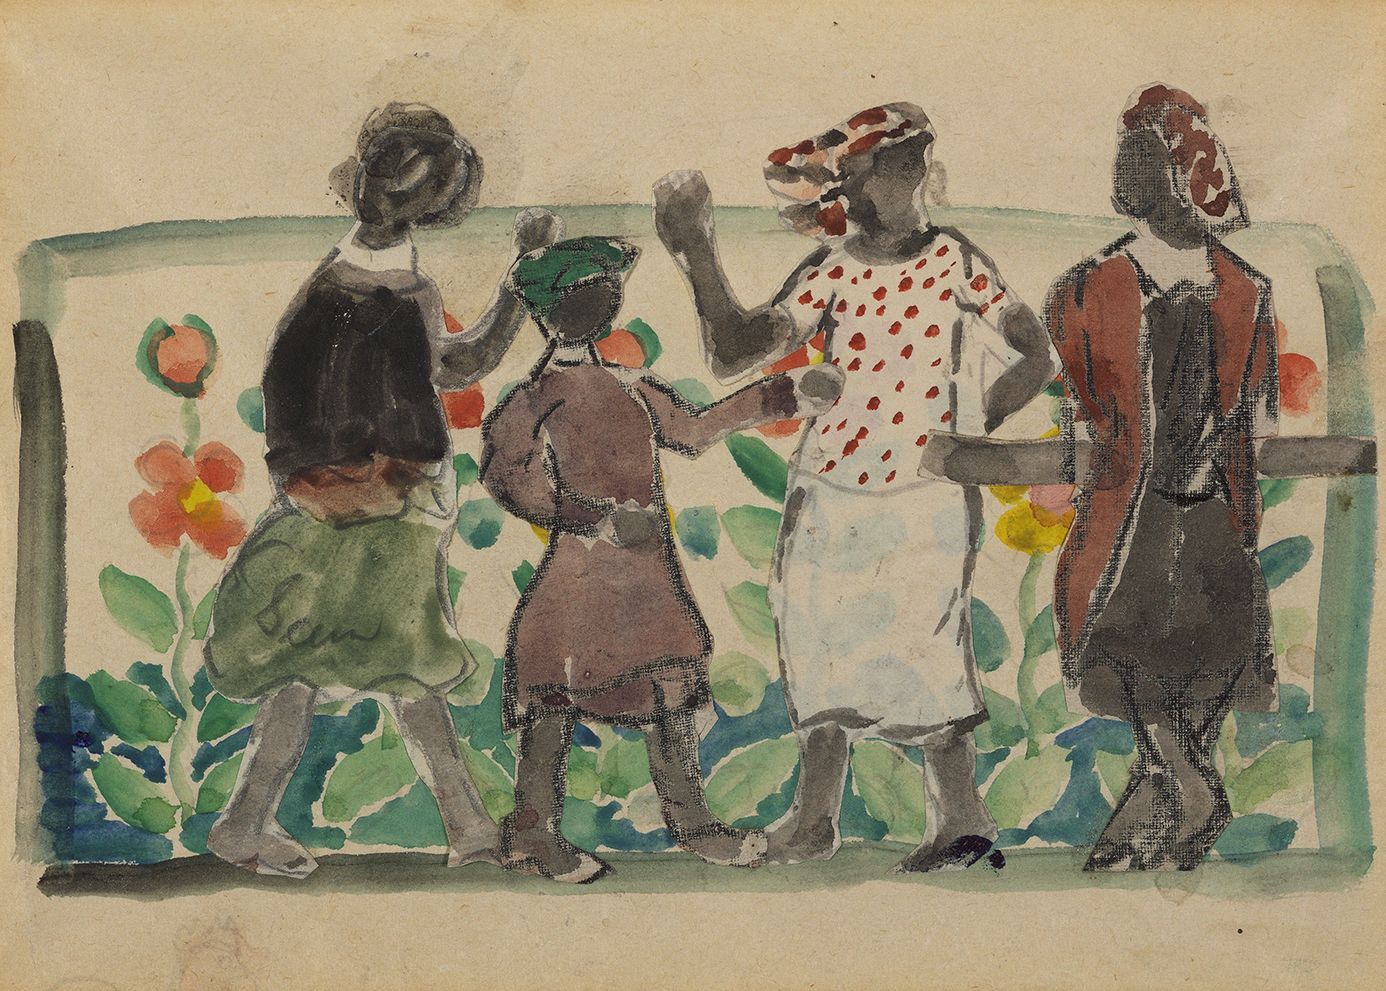 Charles Prendergast (1863-1948), Frieze of Figures, Florida, circa 1946-1947